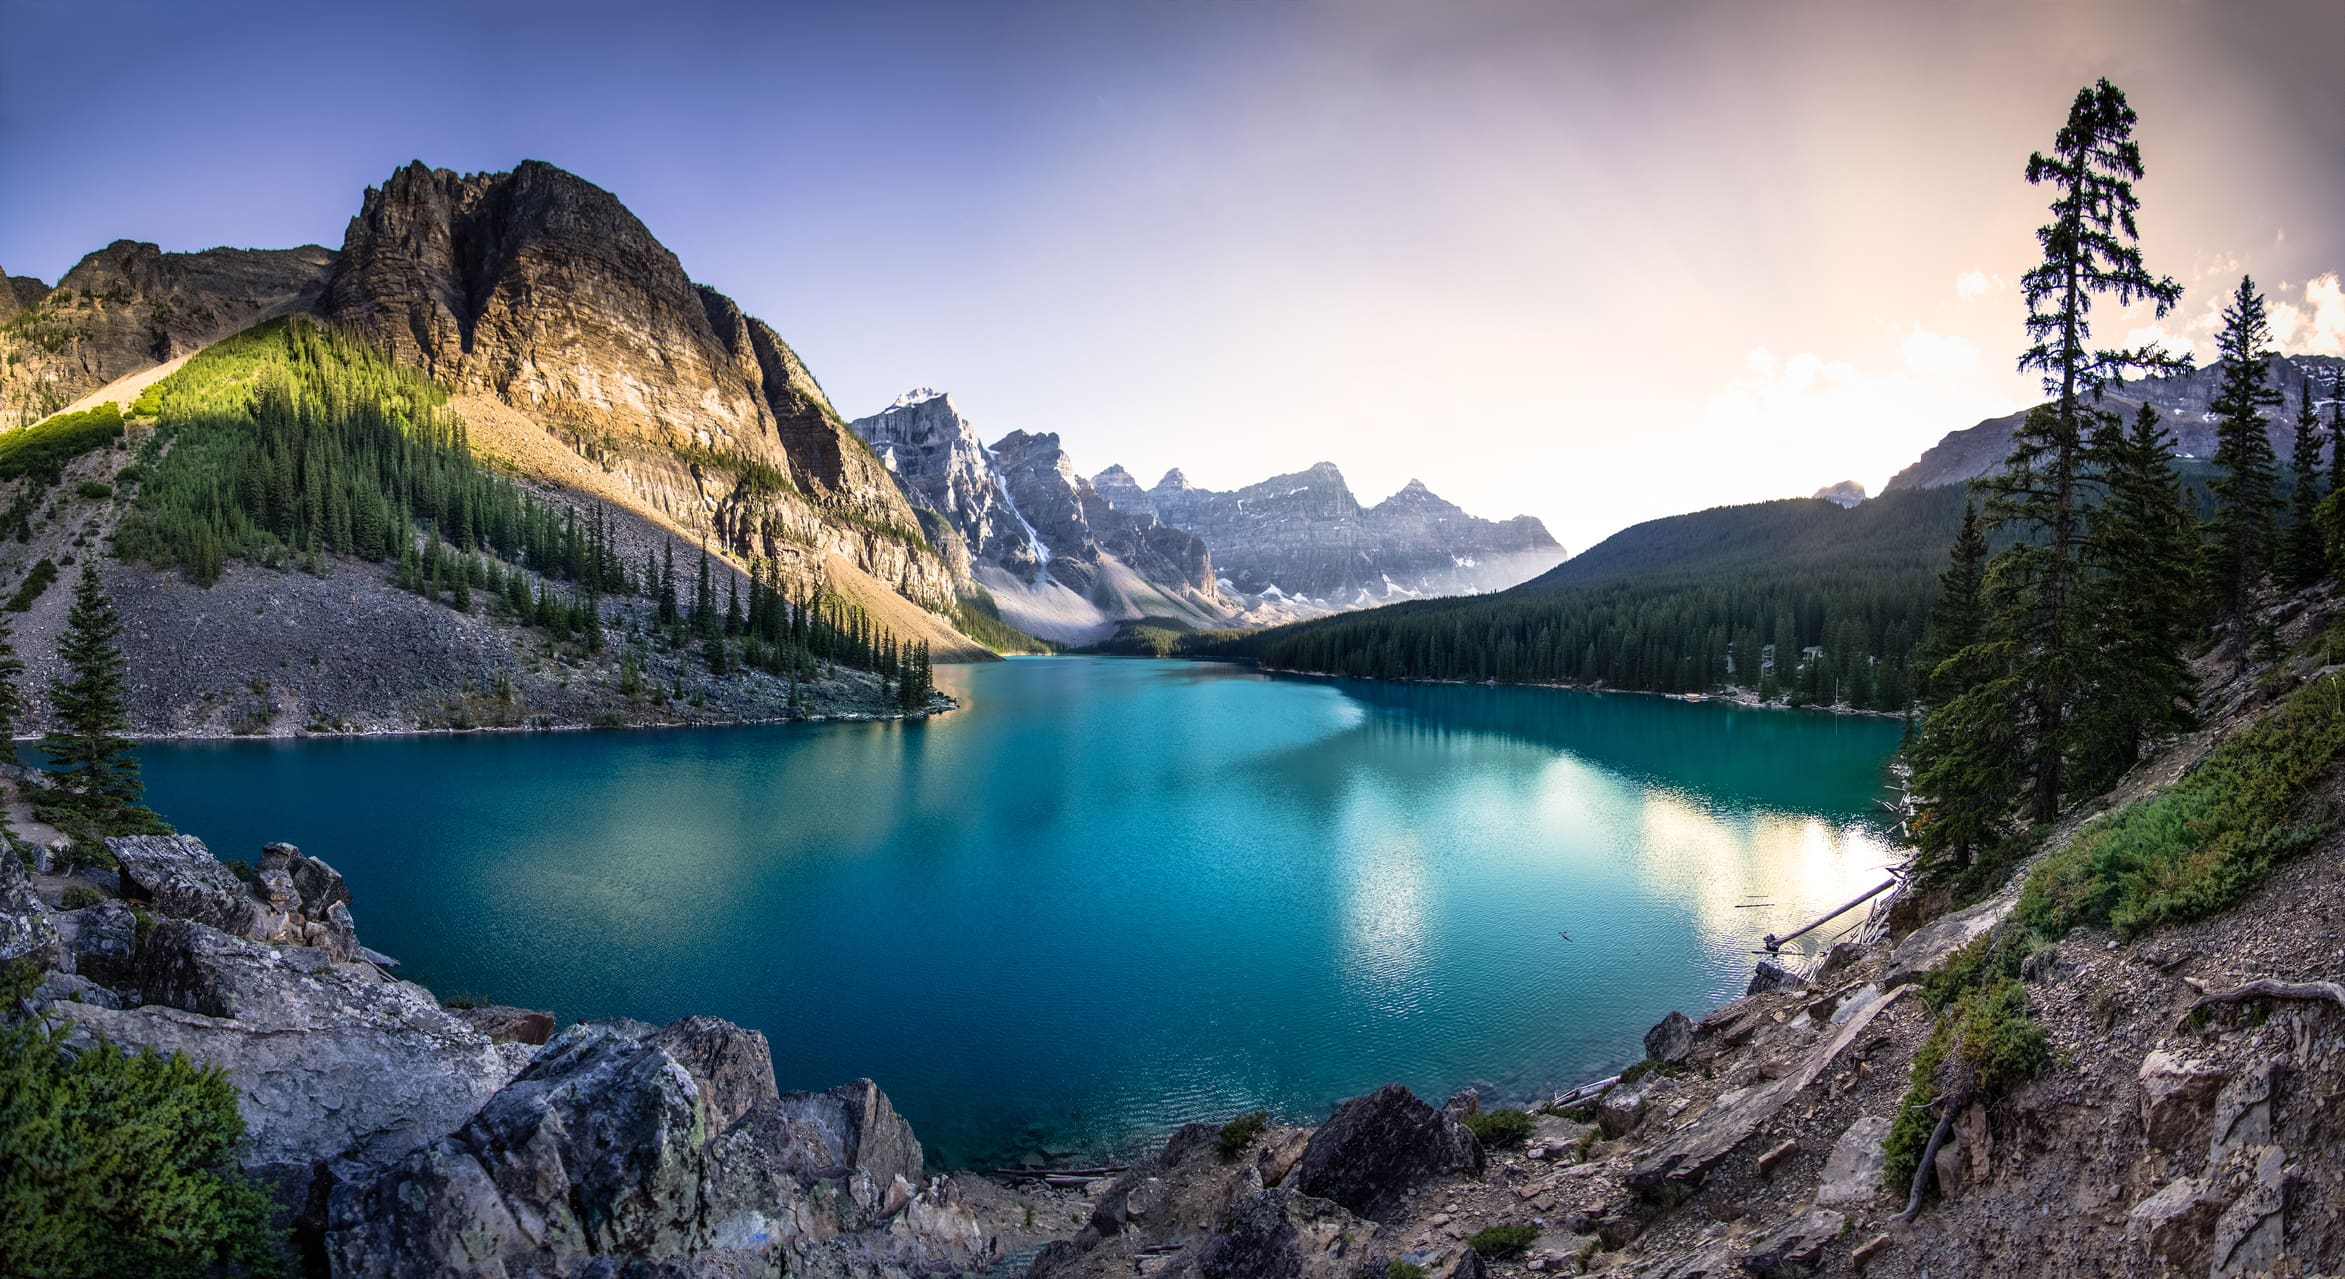 mountain lake amazing landscape moraine award protection national sunset mountains parks canada sunrise around photographs create wallpapers application uiaa istock